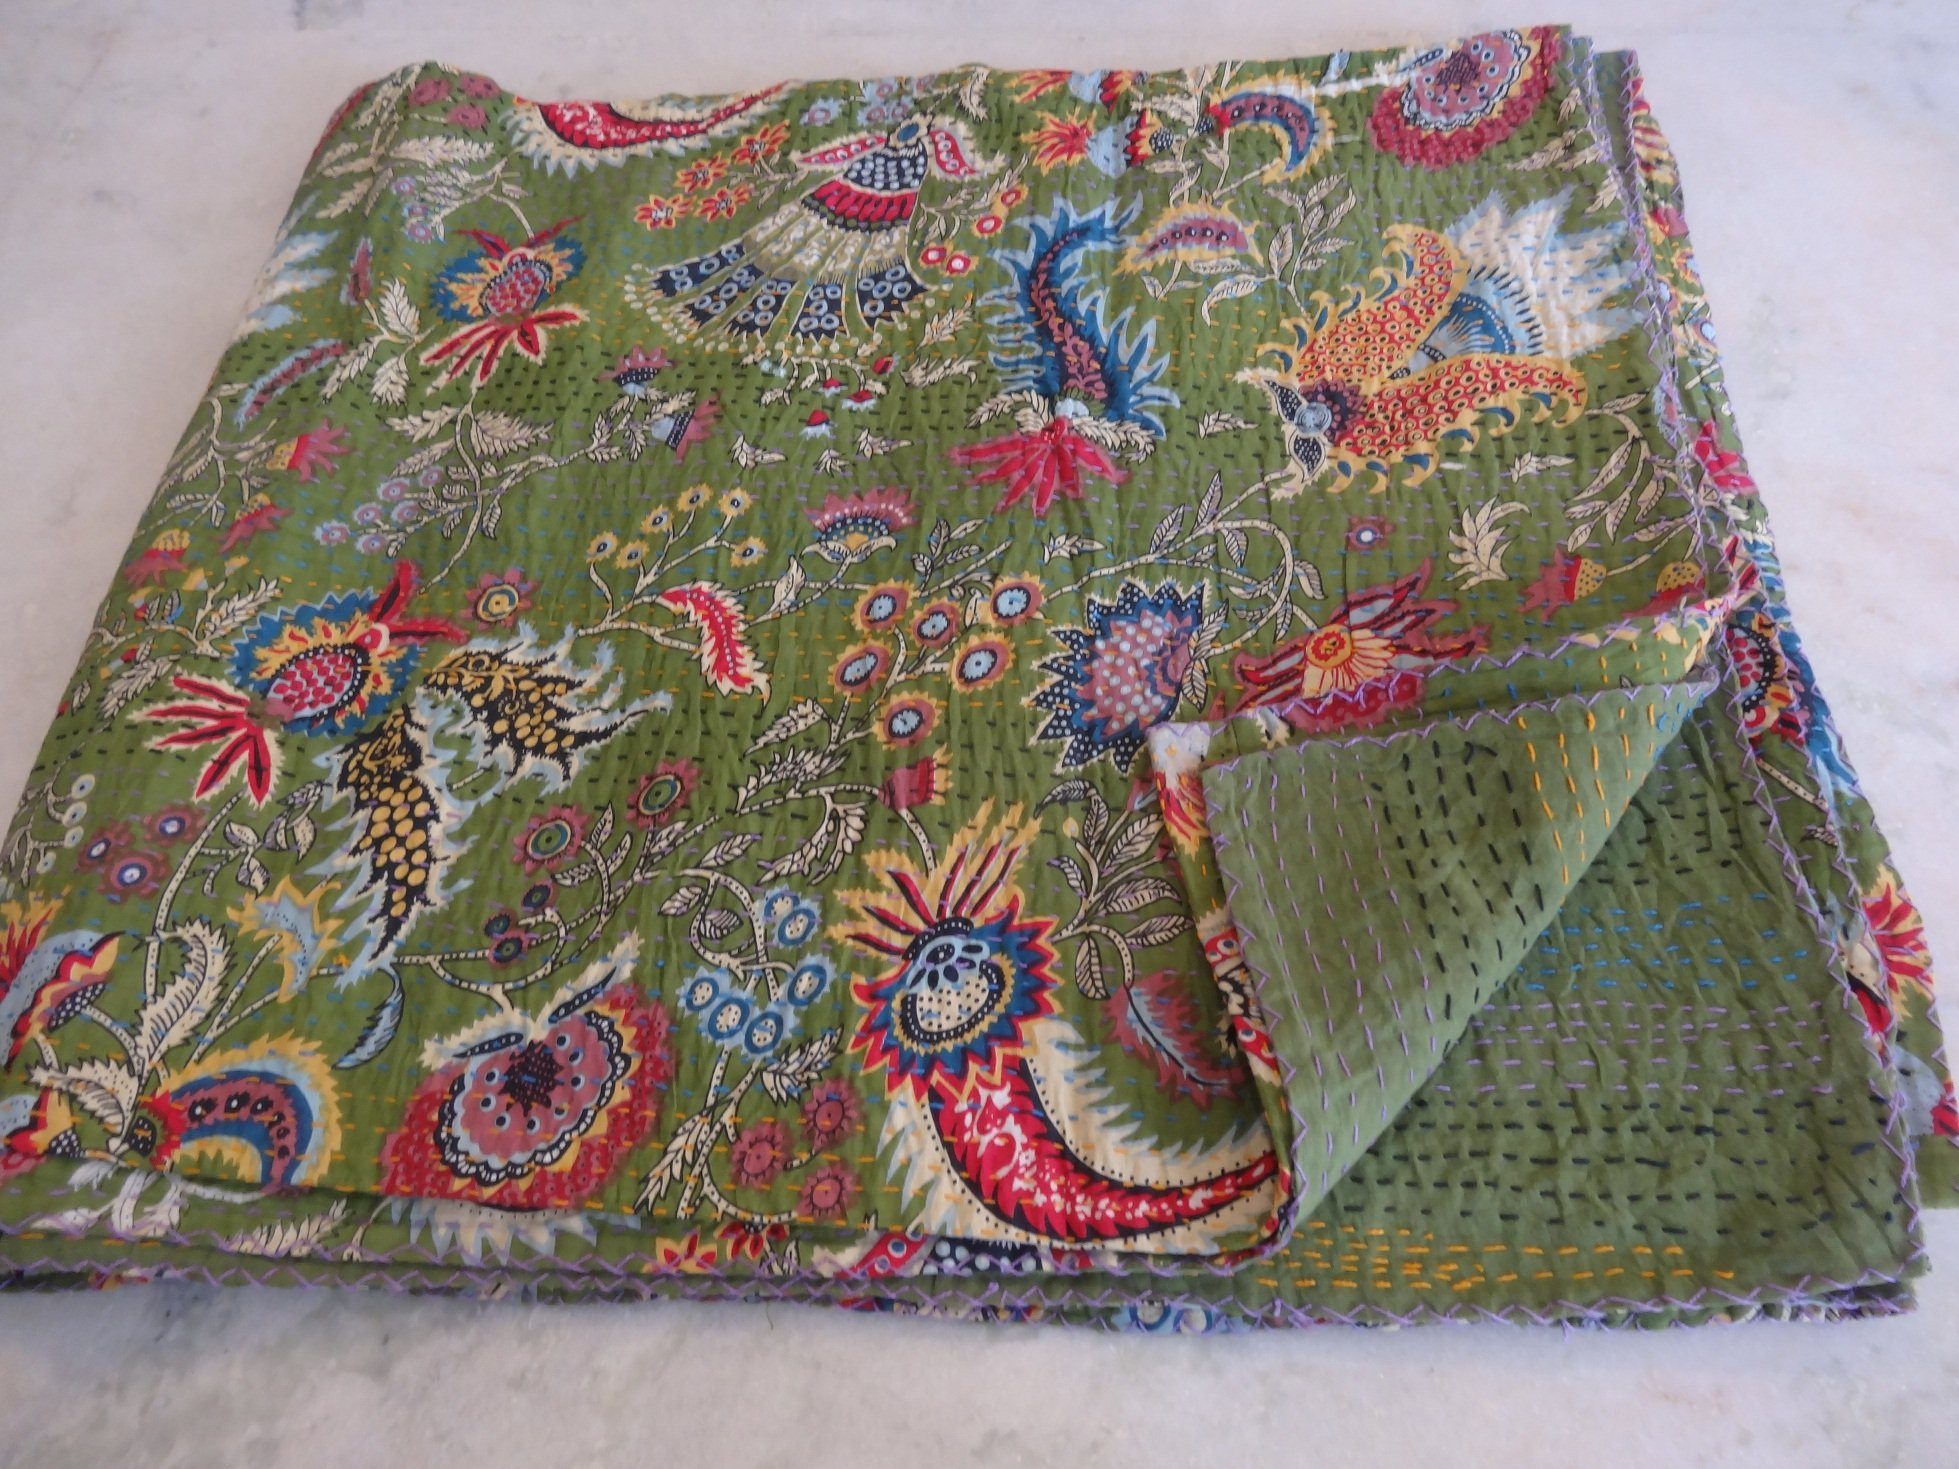 Tribal Asian Textiles 90''x108 Ethnic Queen Size Quilts Hippie Decorative Ralli Boho Throw Blanket Bedding Kantha Work Bed Cover Quilts 1122